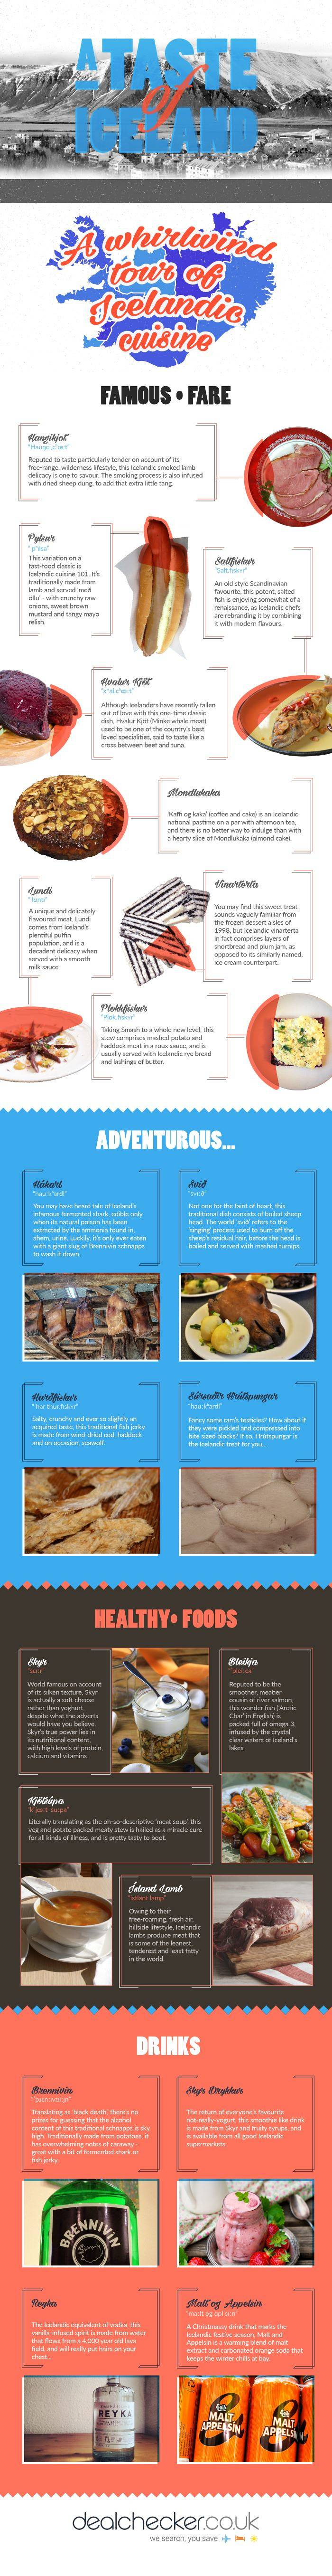 A Taste of Iceland Infographic